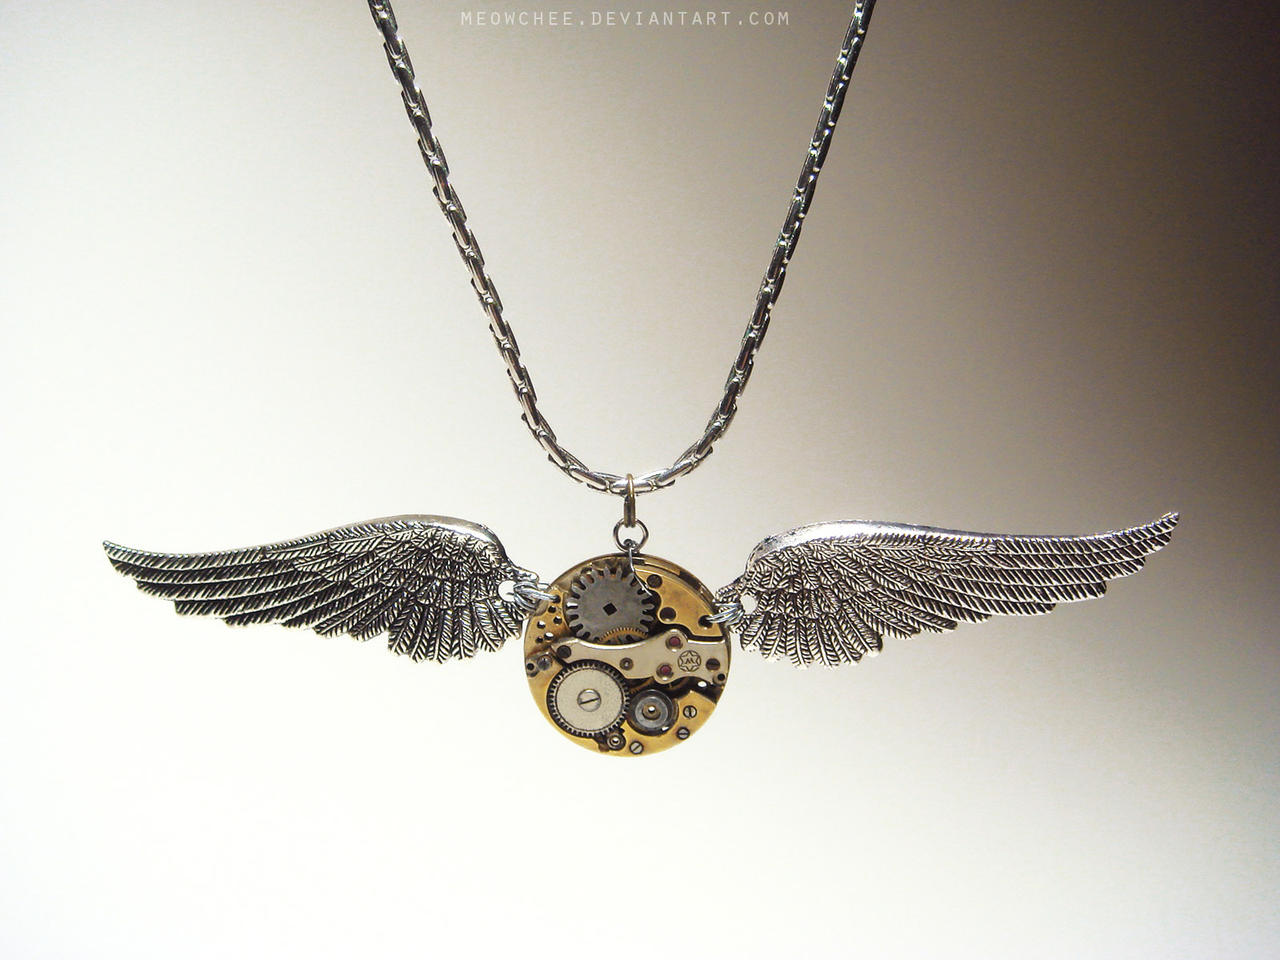 Steampunk Golden Snitch by Meowchee